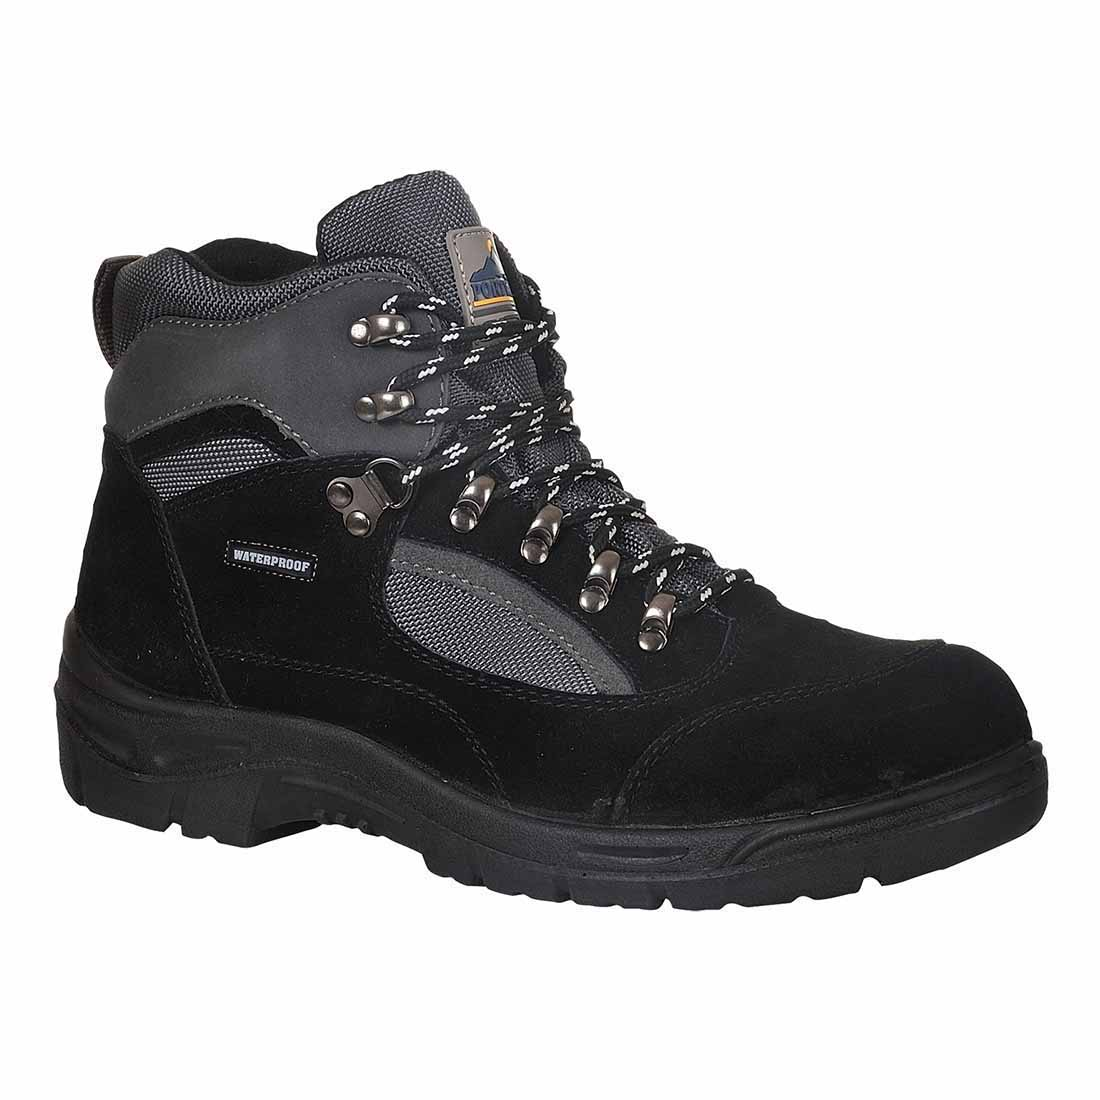 Portwest - Steelite All Safety Weather Hiker Workwear Ankle Safety All Boot S3 WR 0b64b6